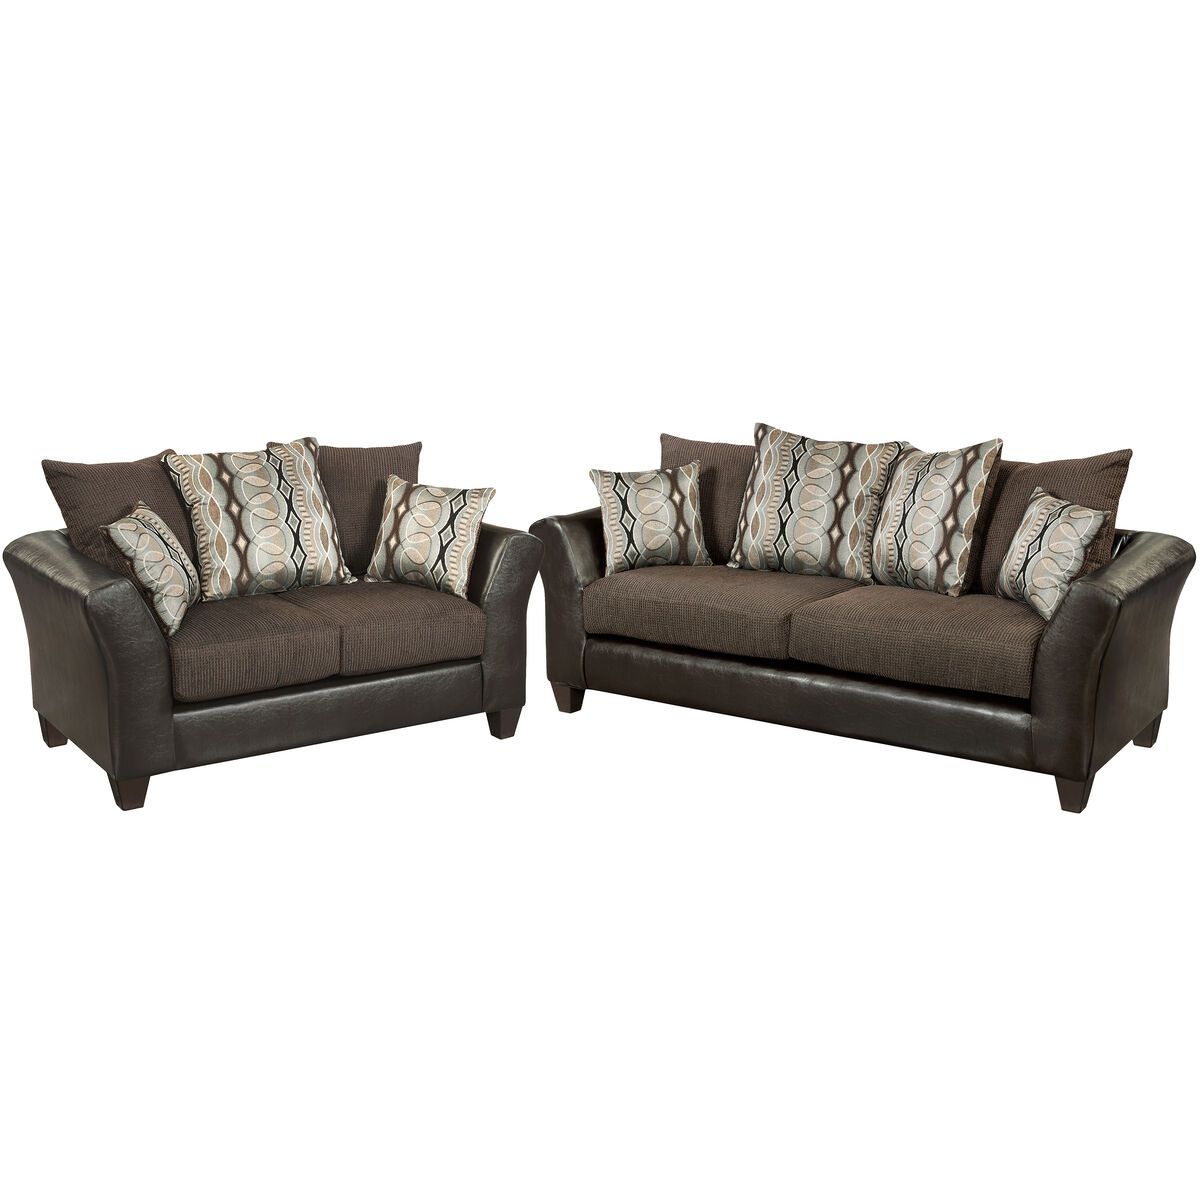 Our Riverstone Rip Sable Chenille Living Room Set Is On Now